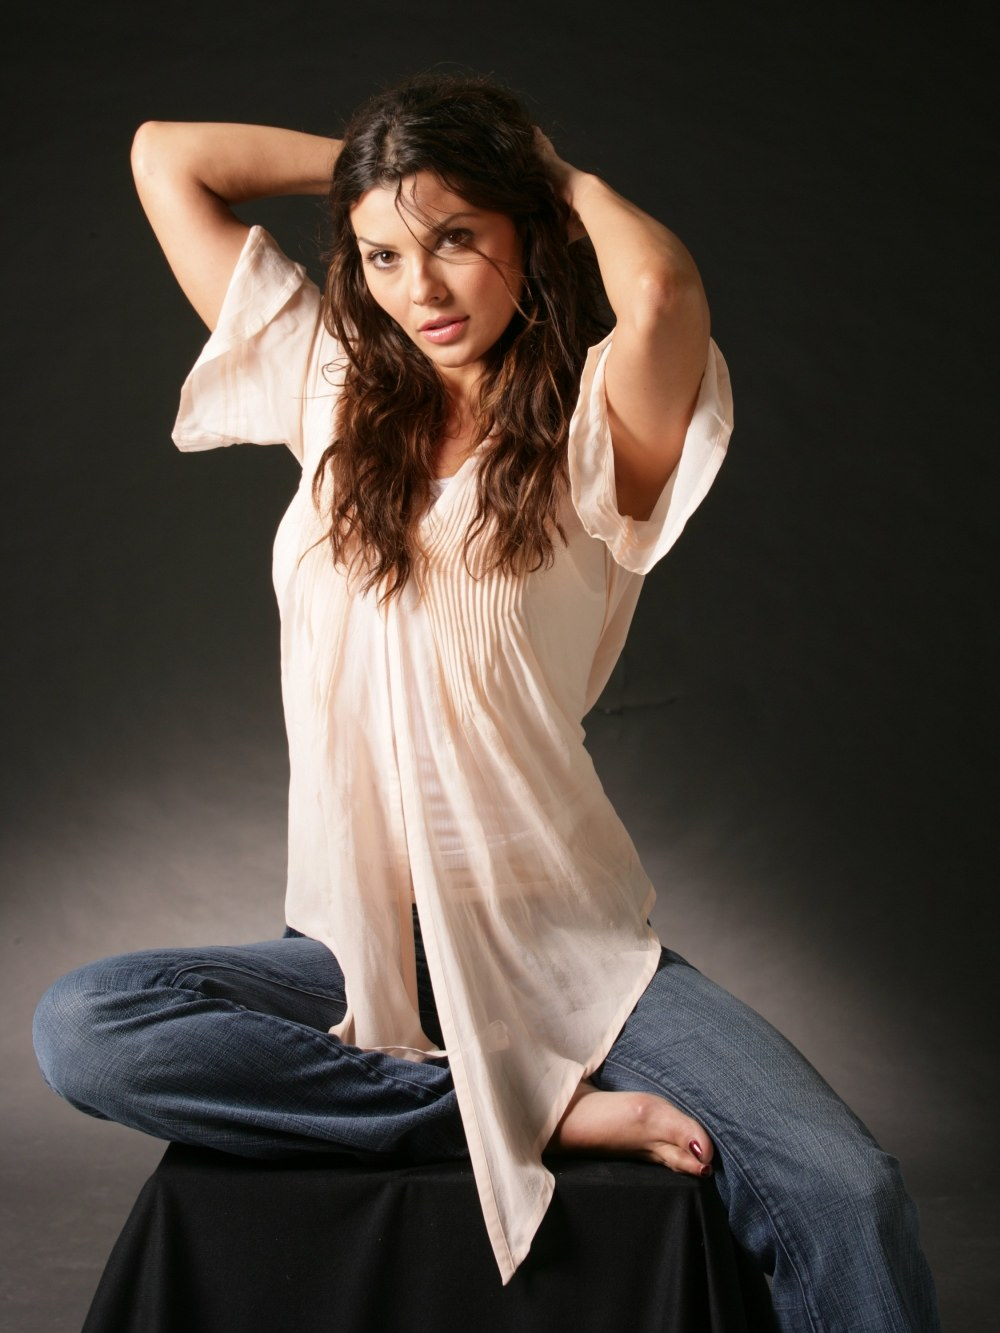 Related pictures famous landry allbright - Ali Landry Photo Shoot